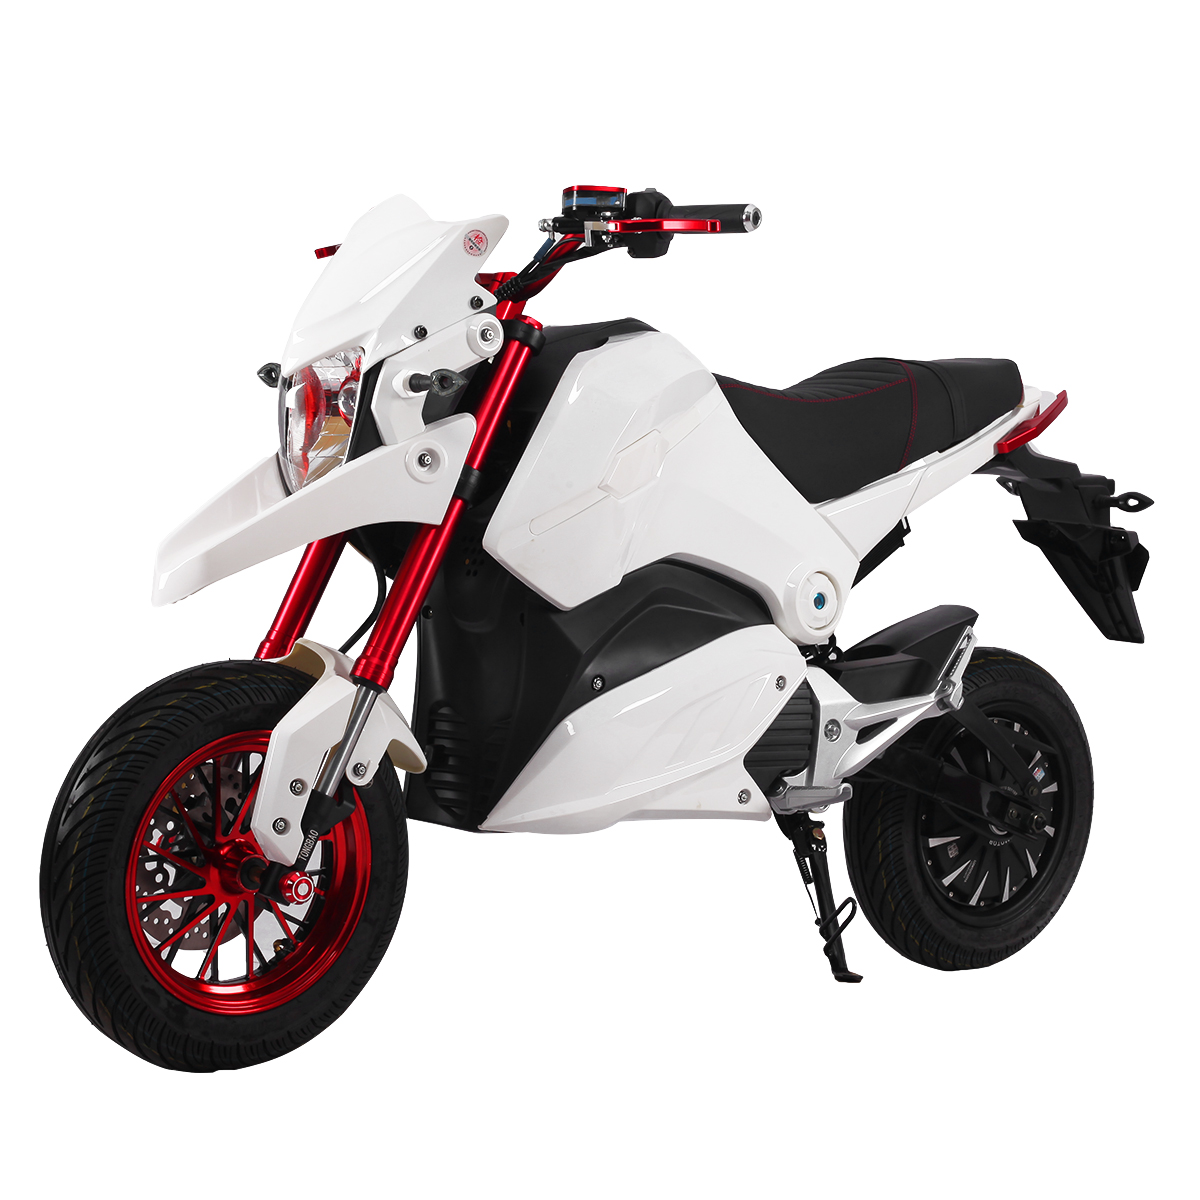 The Most Popular Electric Motorcycle Sportbike